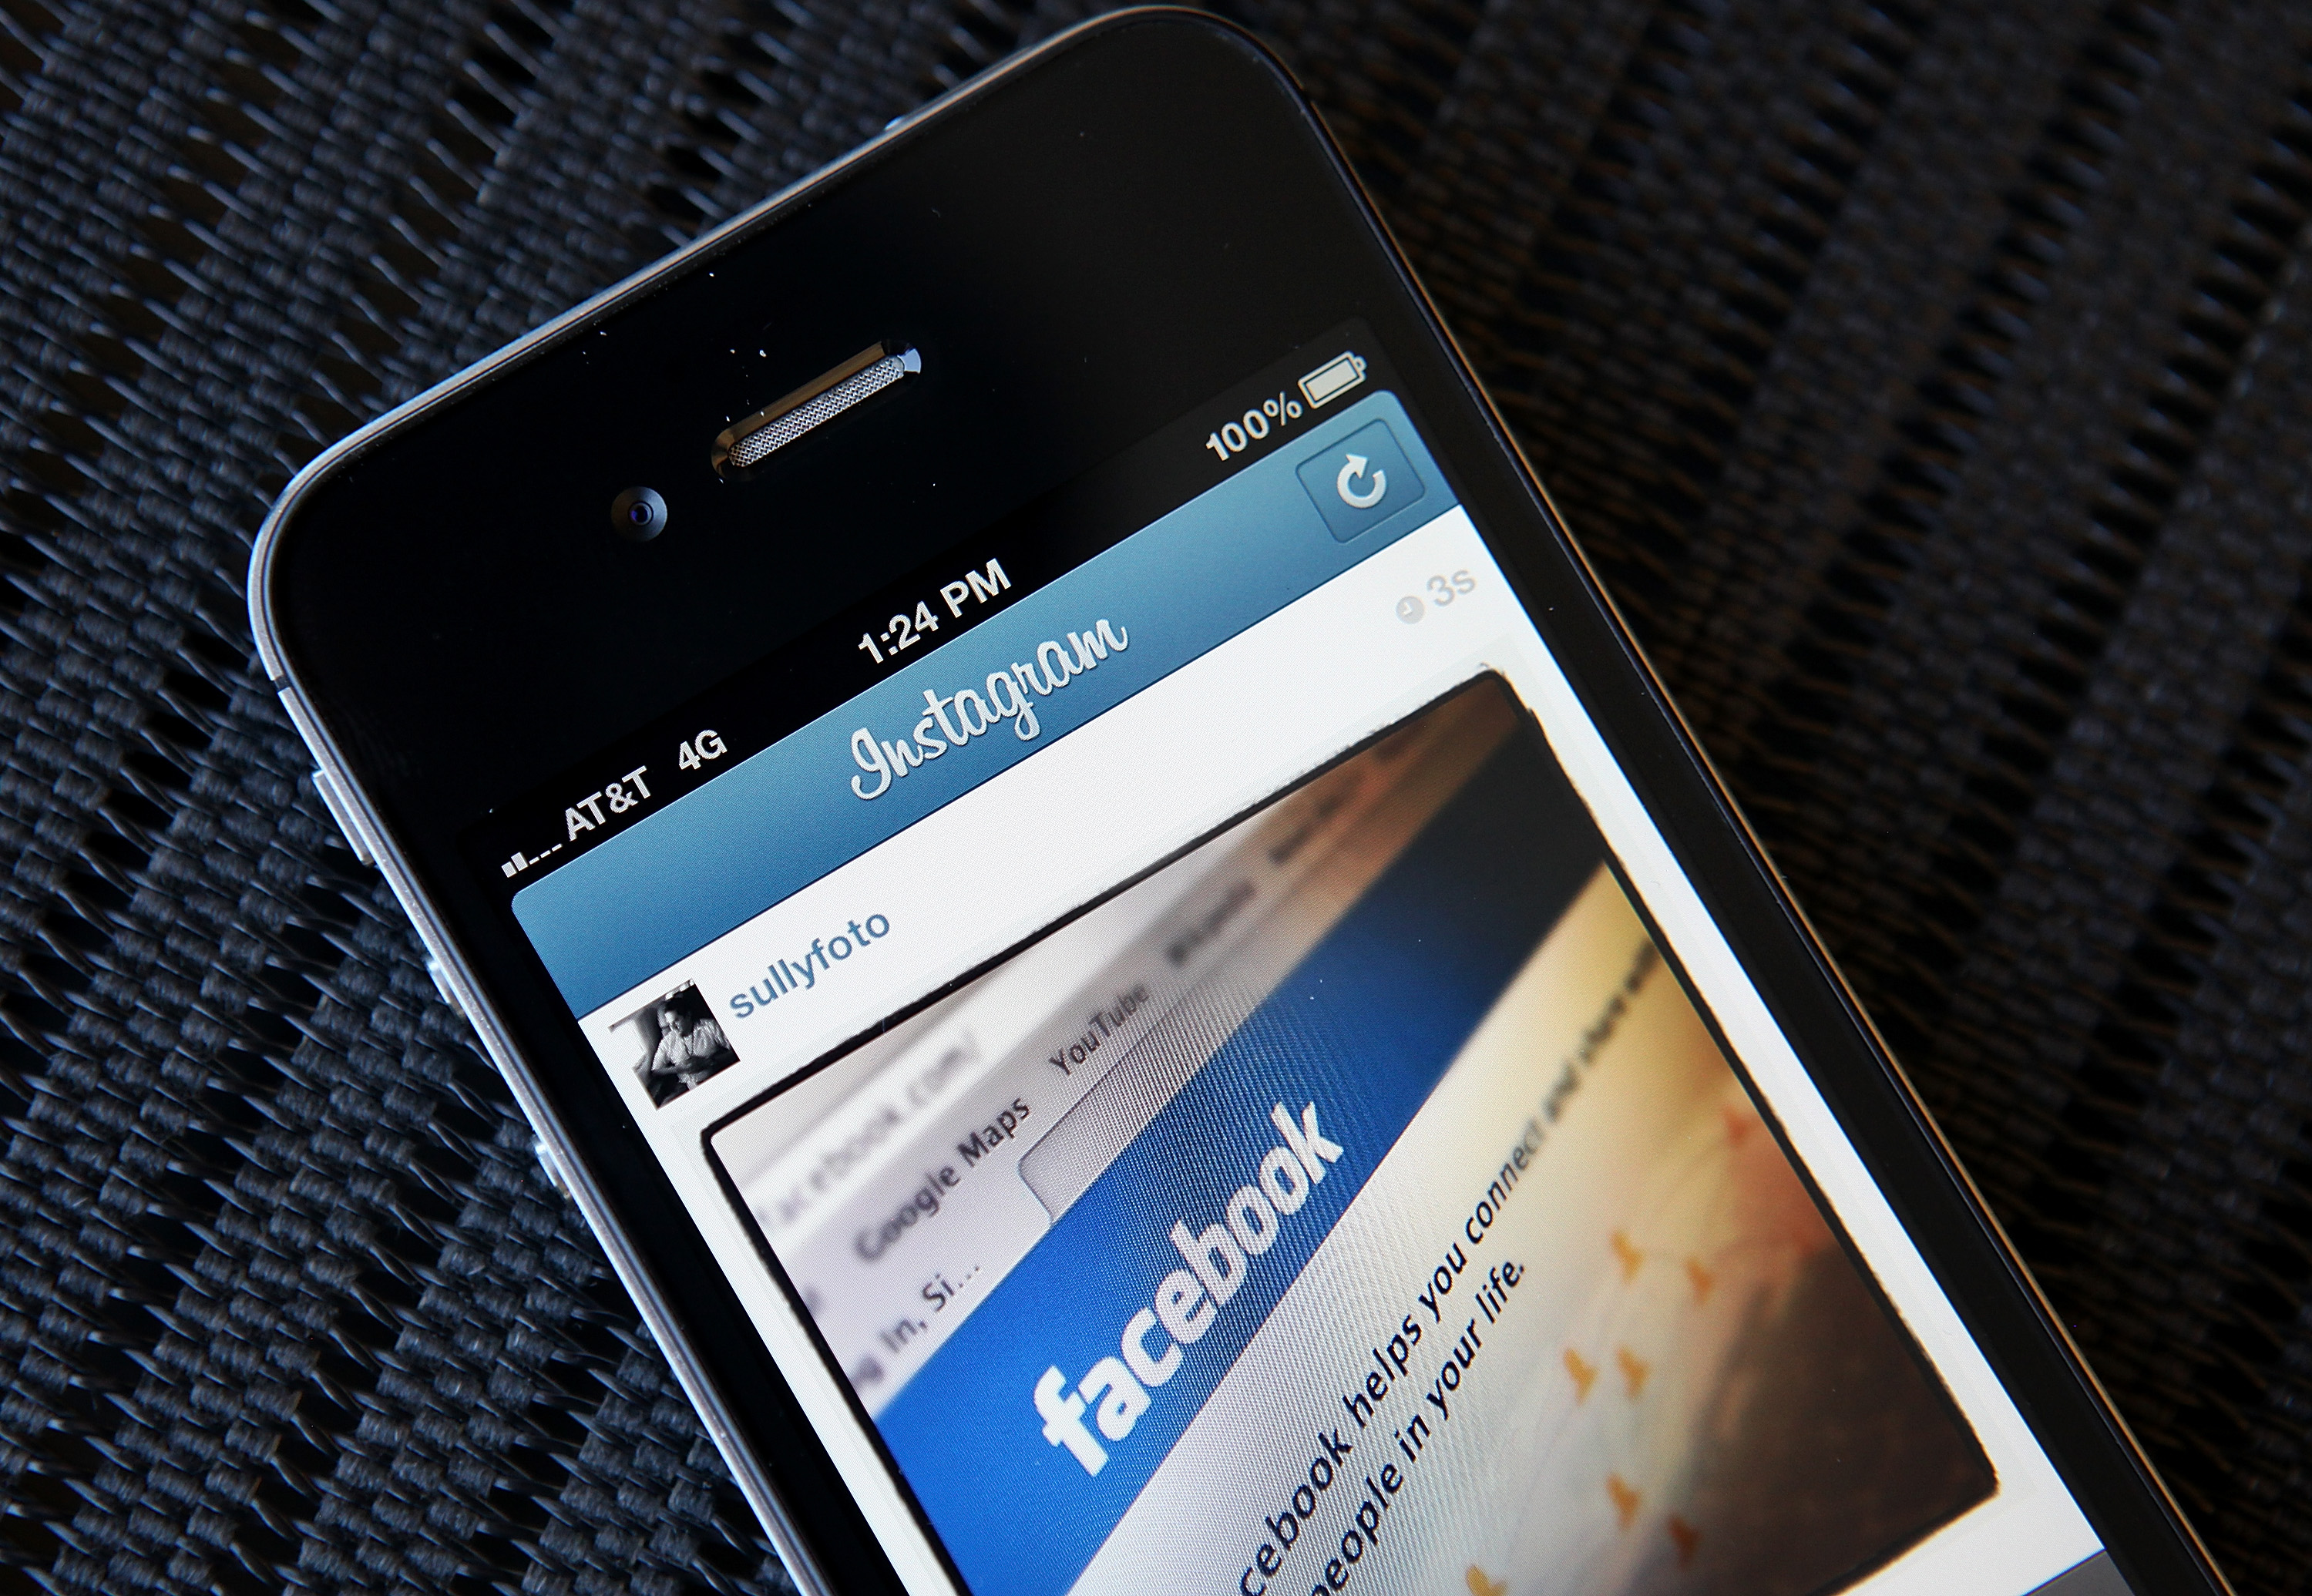 How to make a photo album on facebook iphone